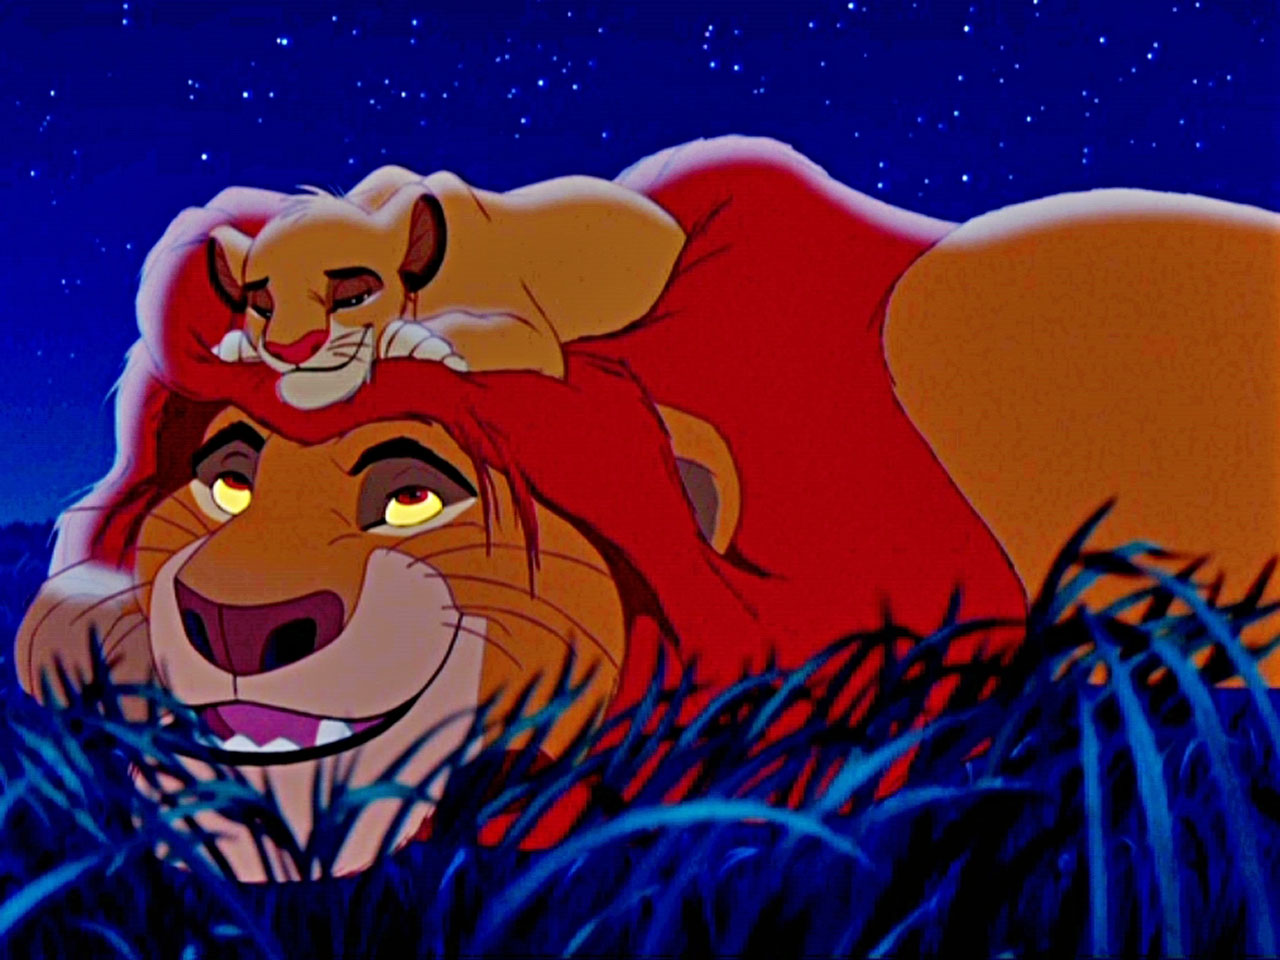 The Lion King Beautiful High Quality Hd Wallpapers All Hd Wallpapers